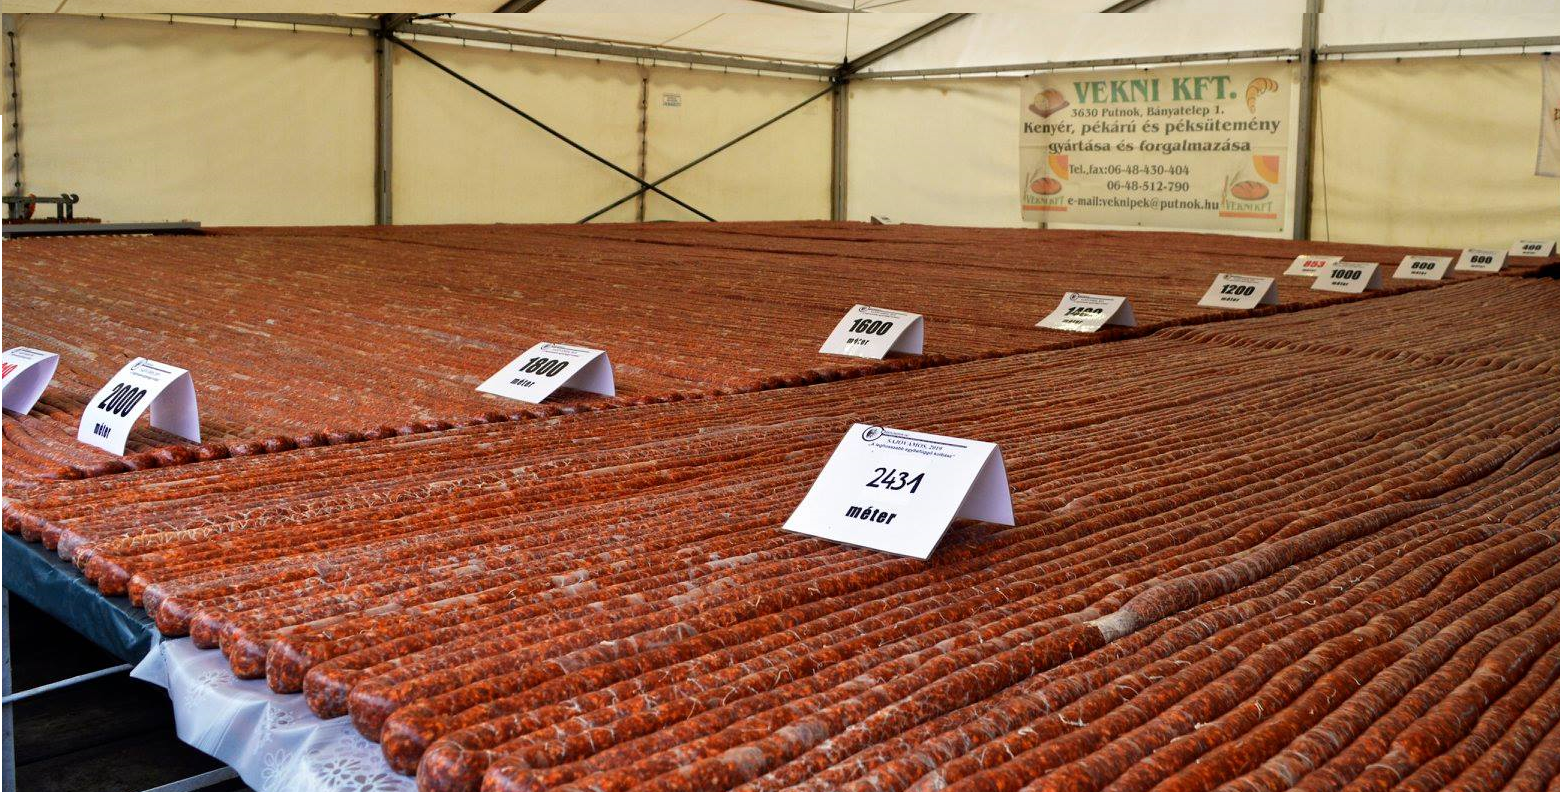 #hungary #hungarian #village breaks world record, longest sausage